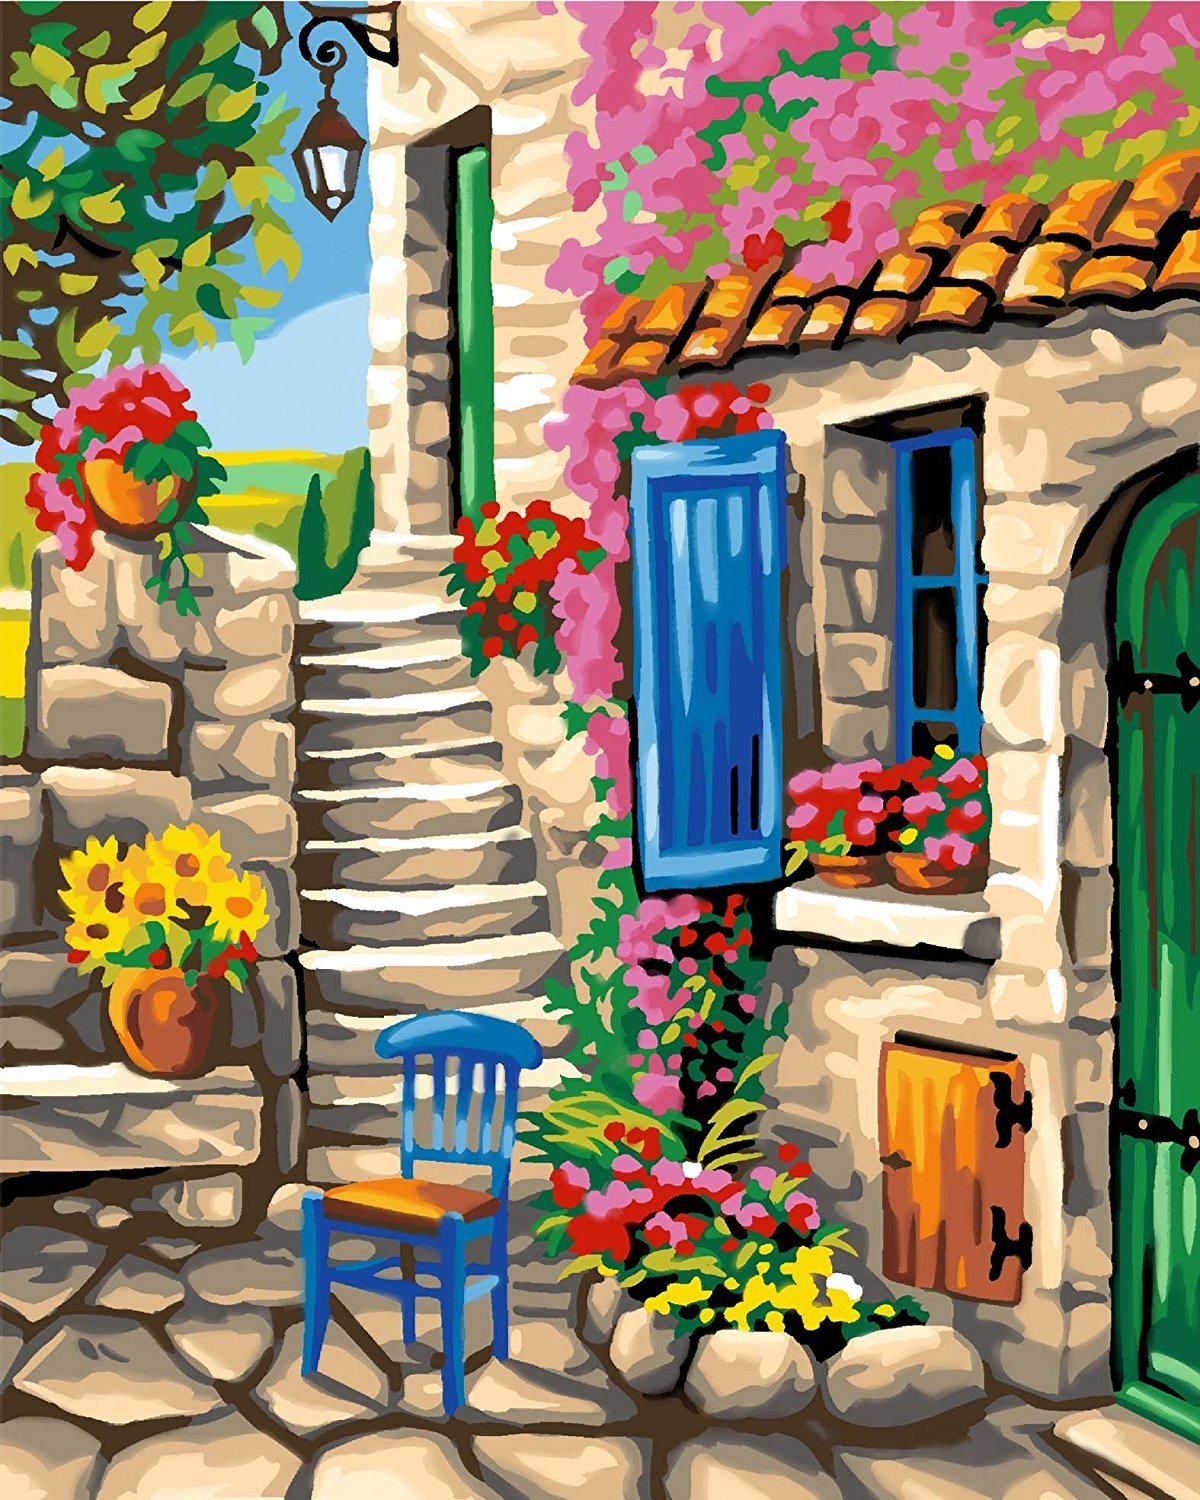 Creative Painting By Scene Numbers Patio Scene By by KSG 8c395e